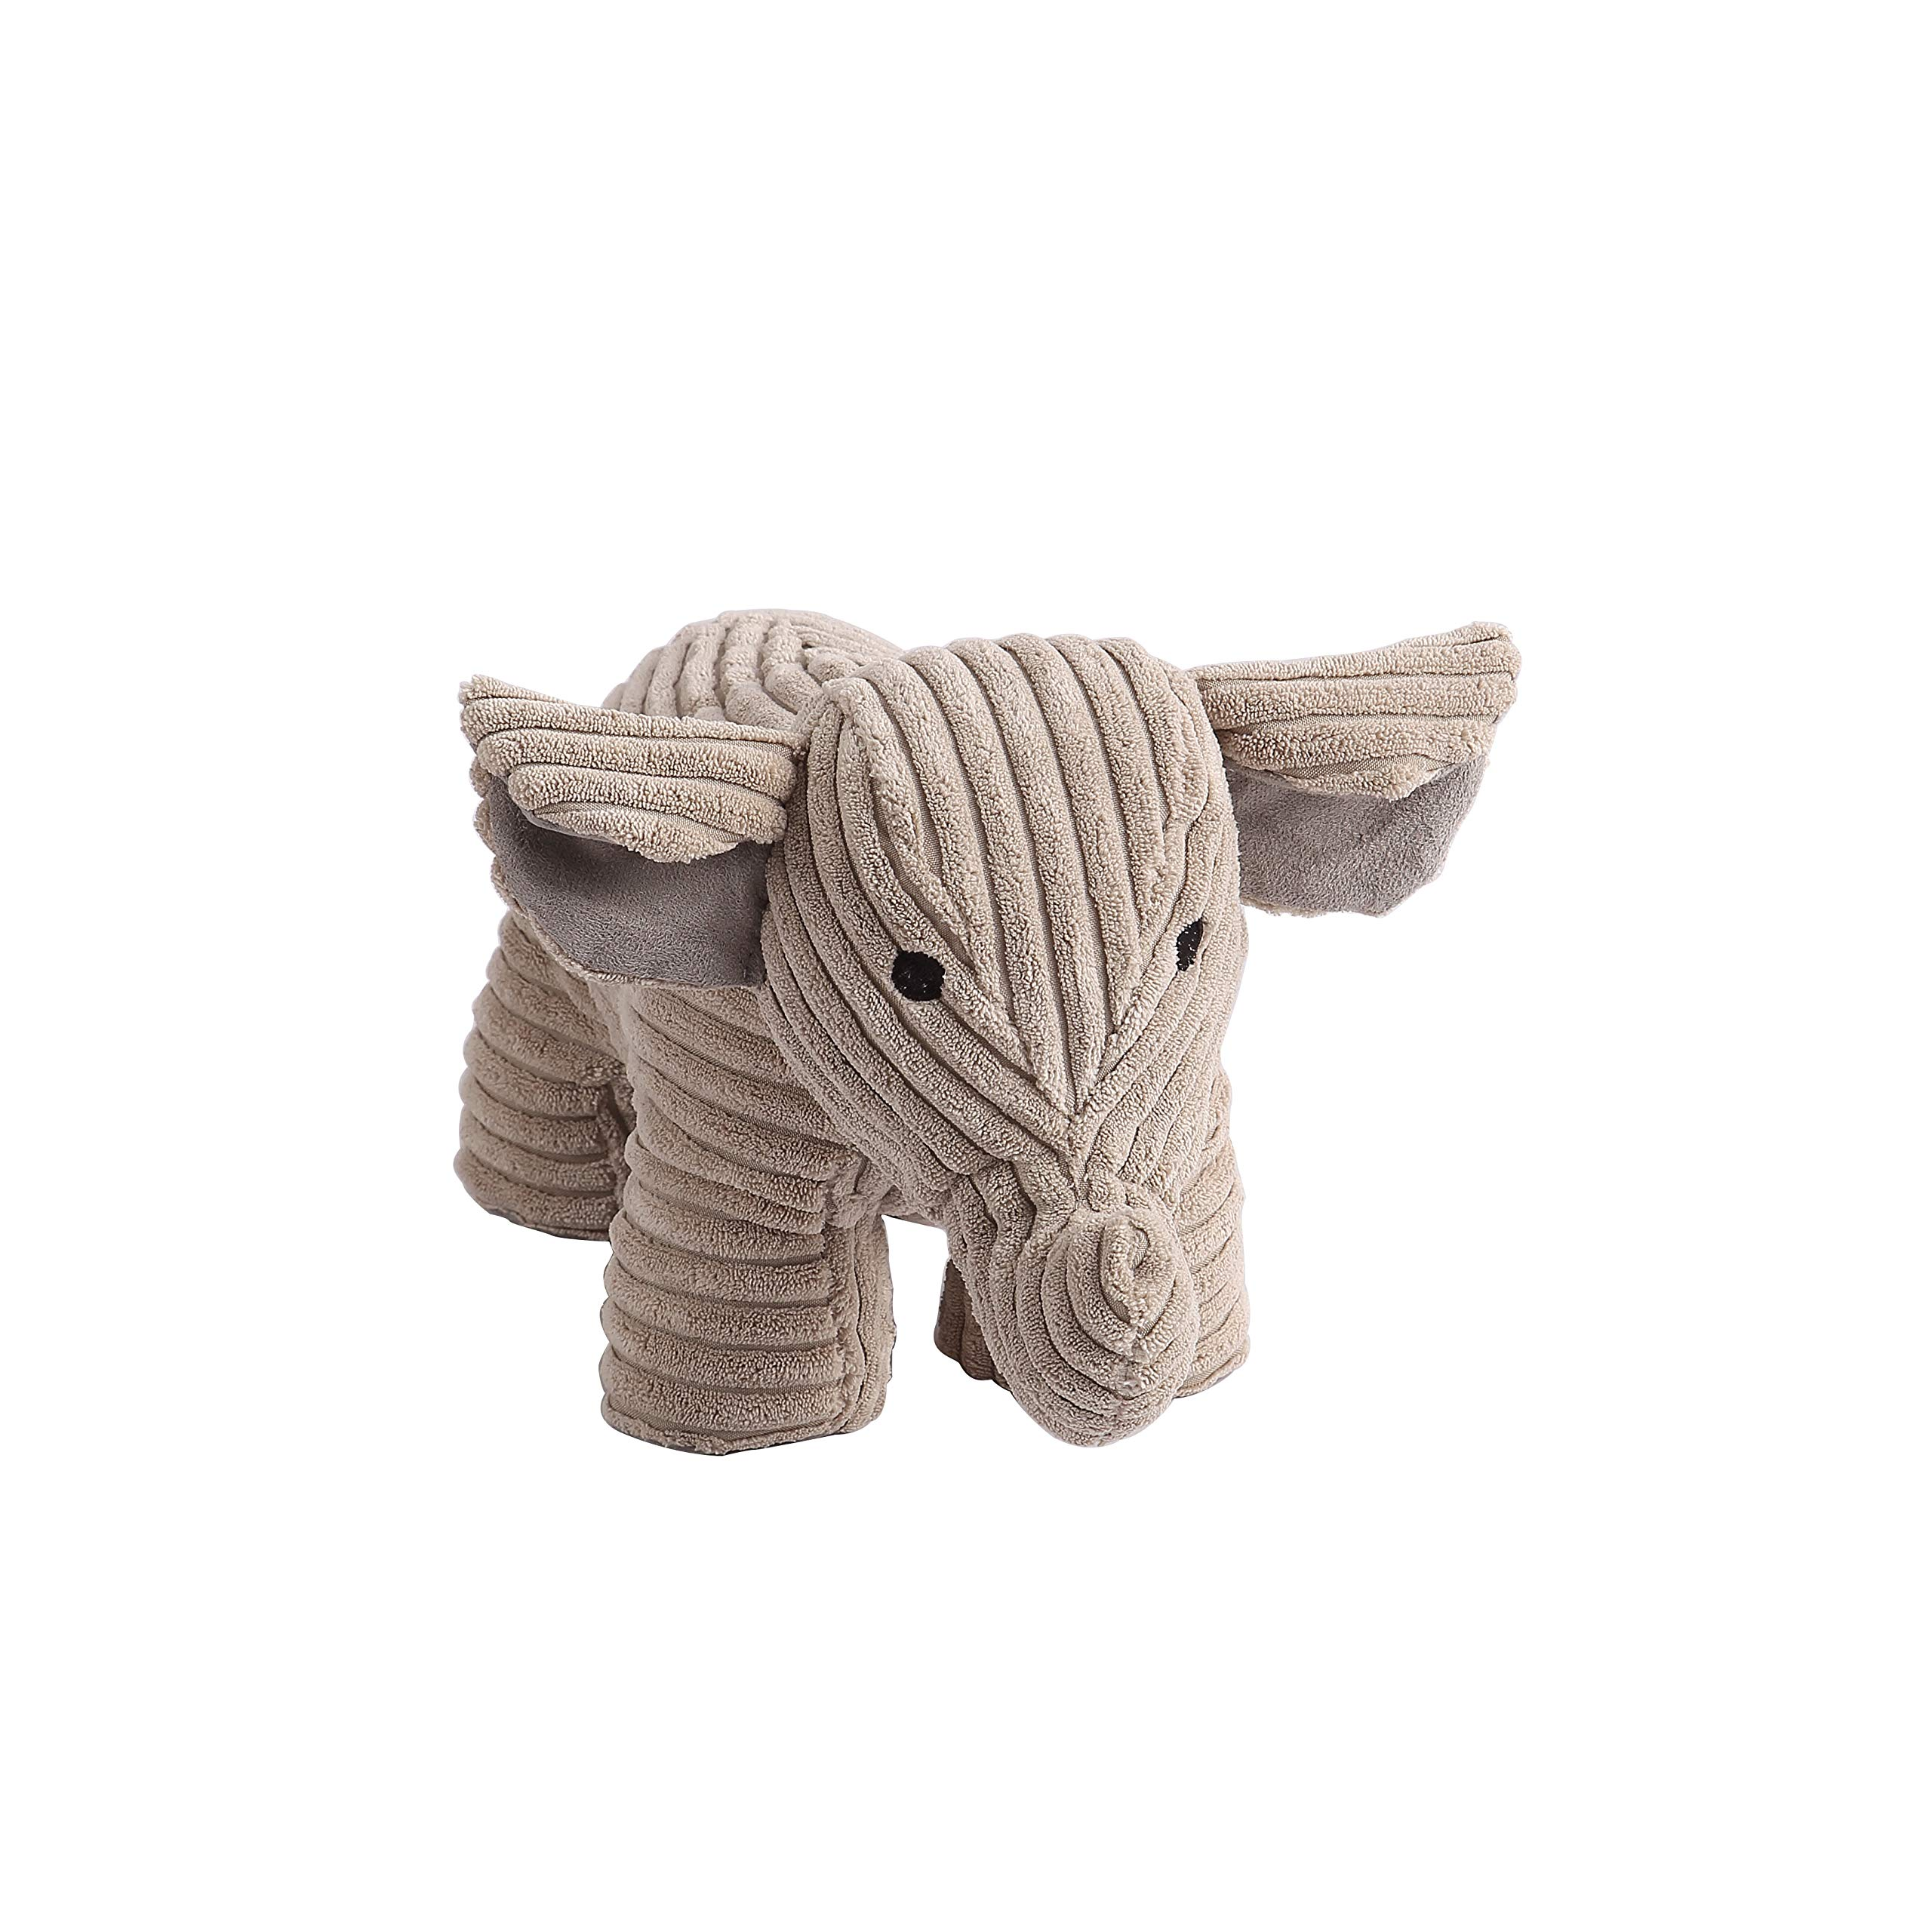 Decorative Door Stopper by Morgan Home – Available in Many Animals and Styles – Measures Approx. 11 x 5.5 x 5.5 Inches (Grey Elephant) by Morgan Home (Image #1)